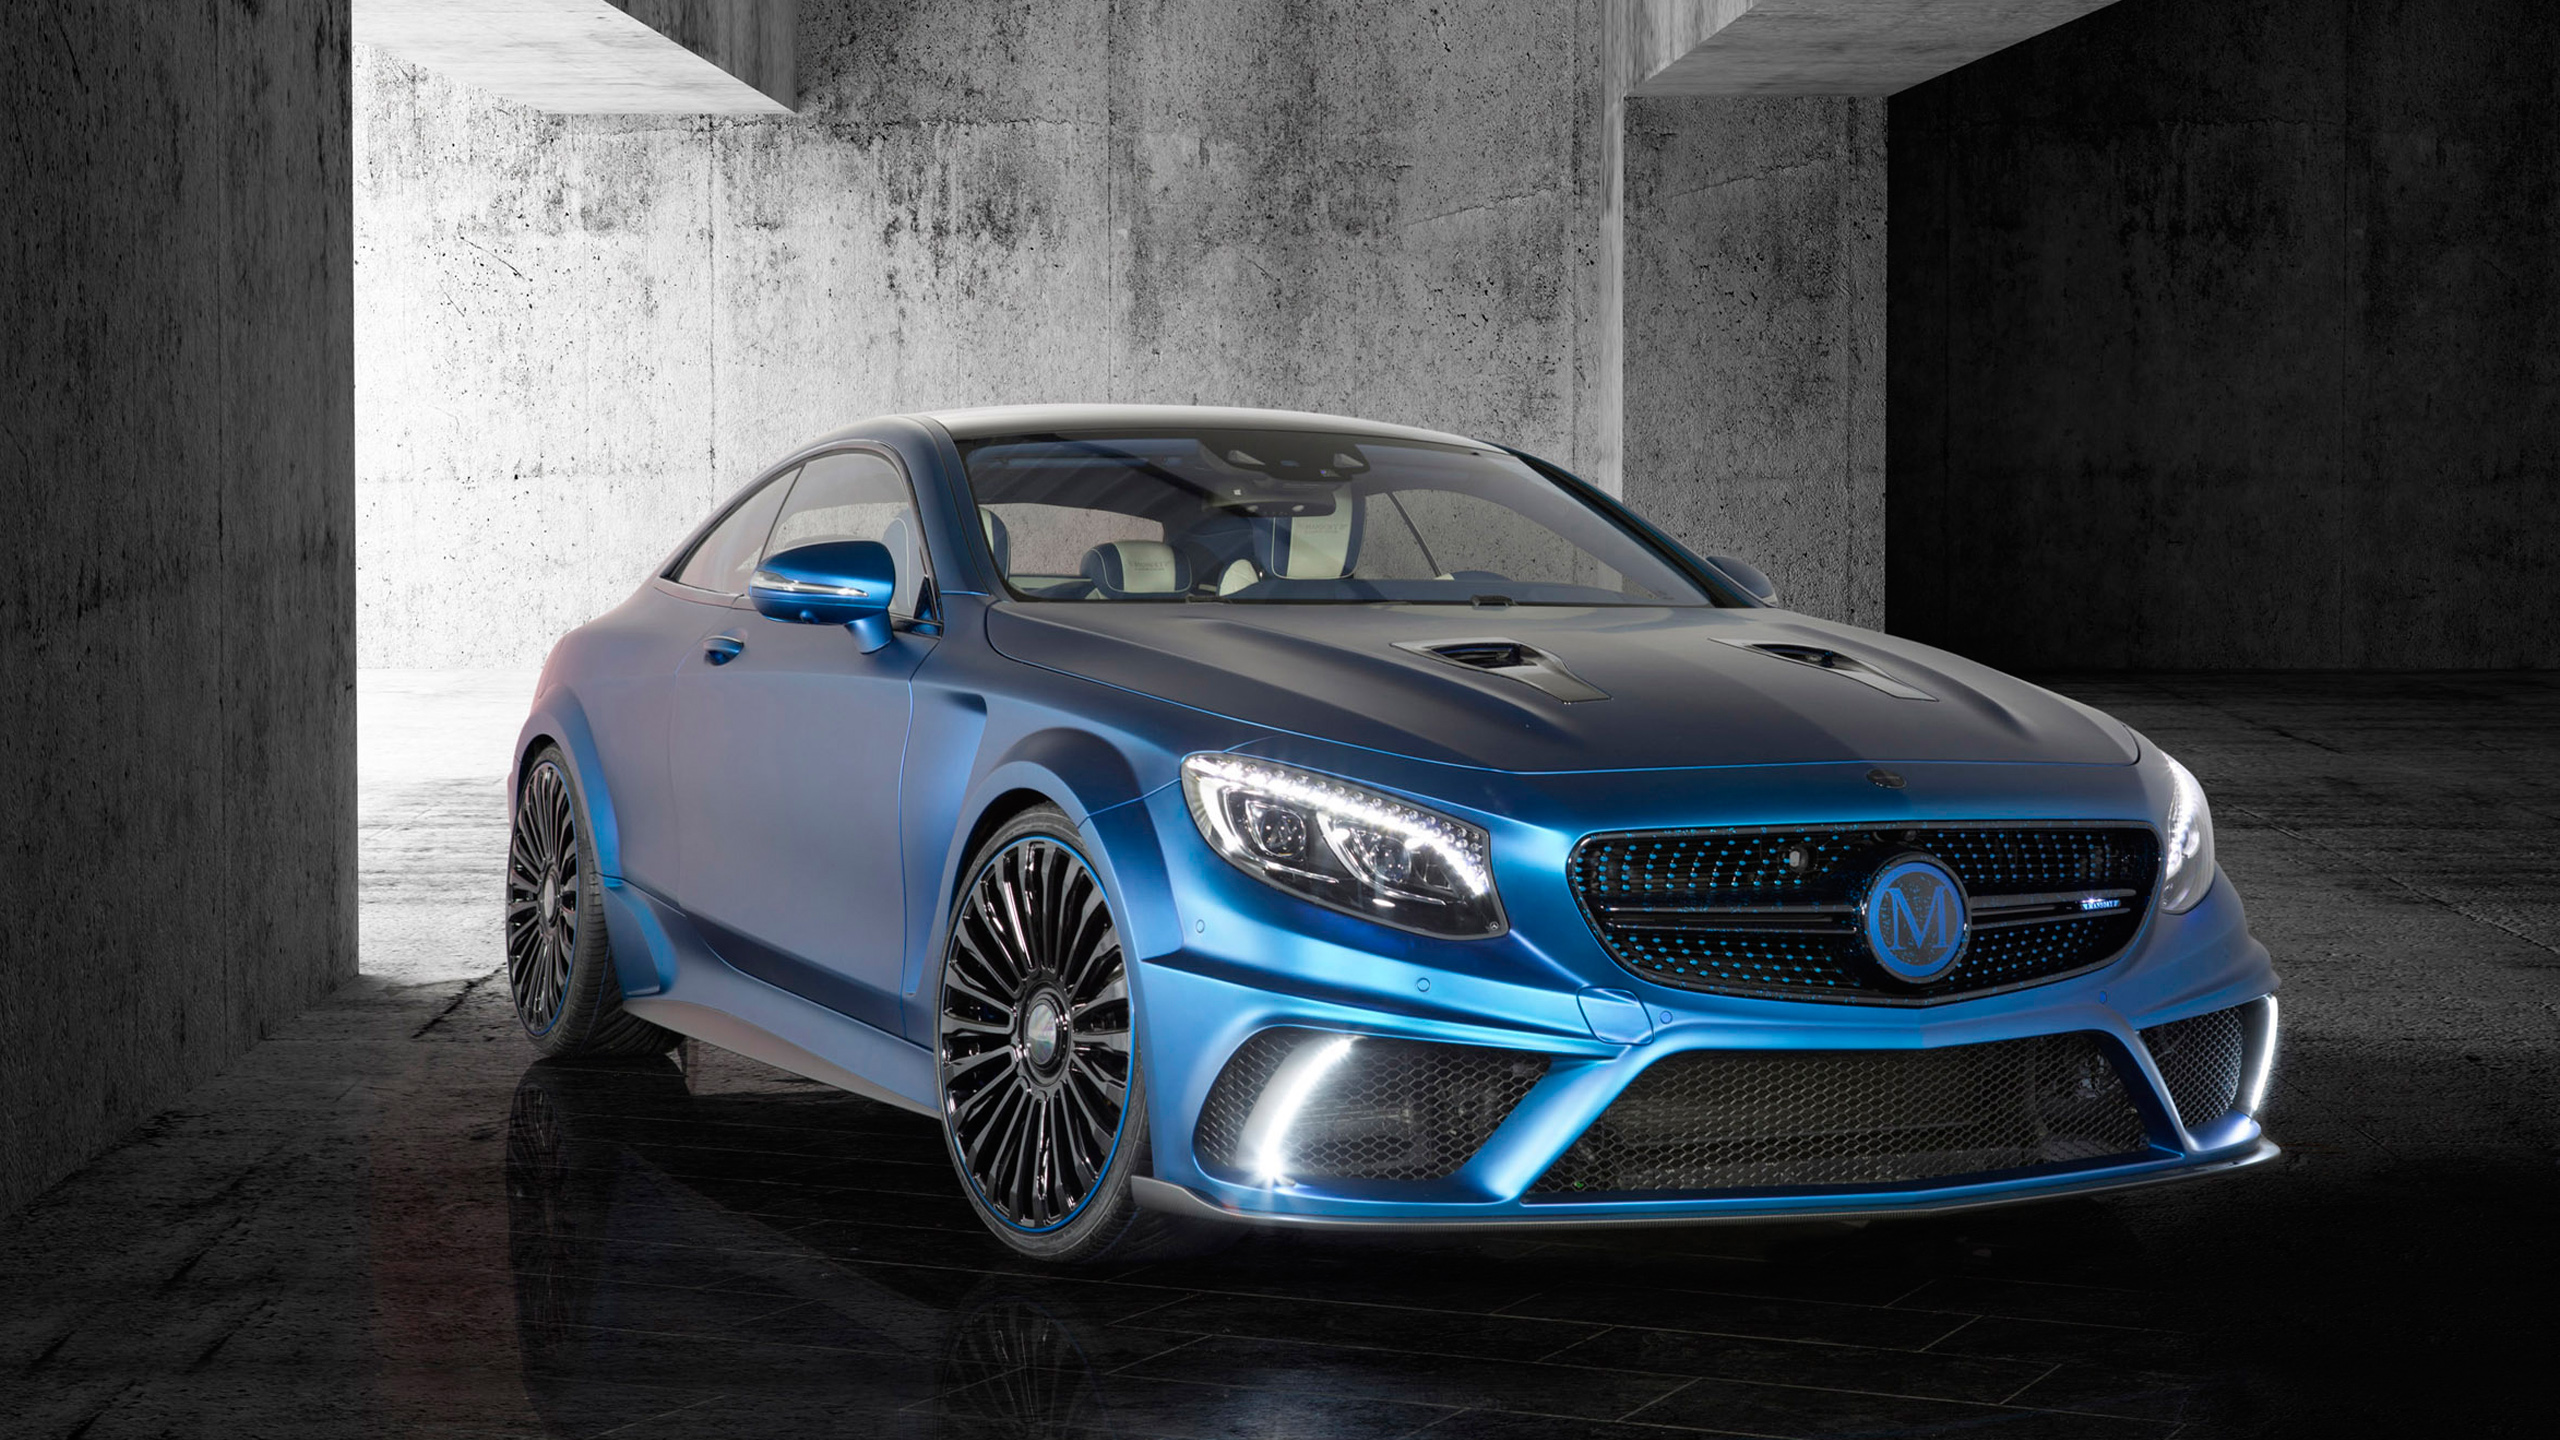 2015 Mansory Mercedes Benz S63 Amg Coupe Diamond Edition